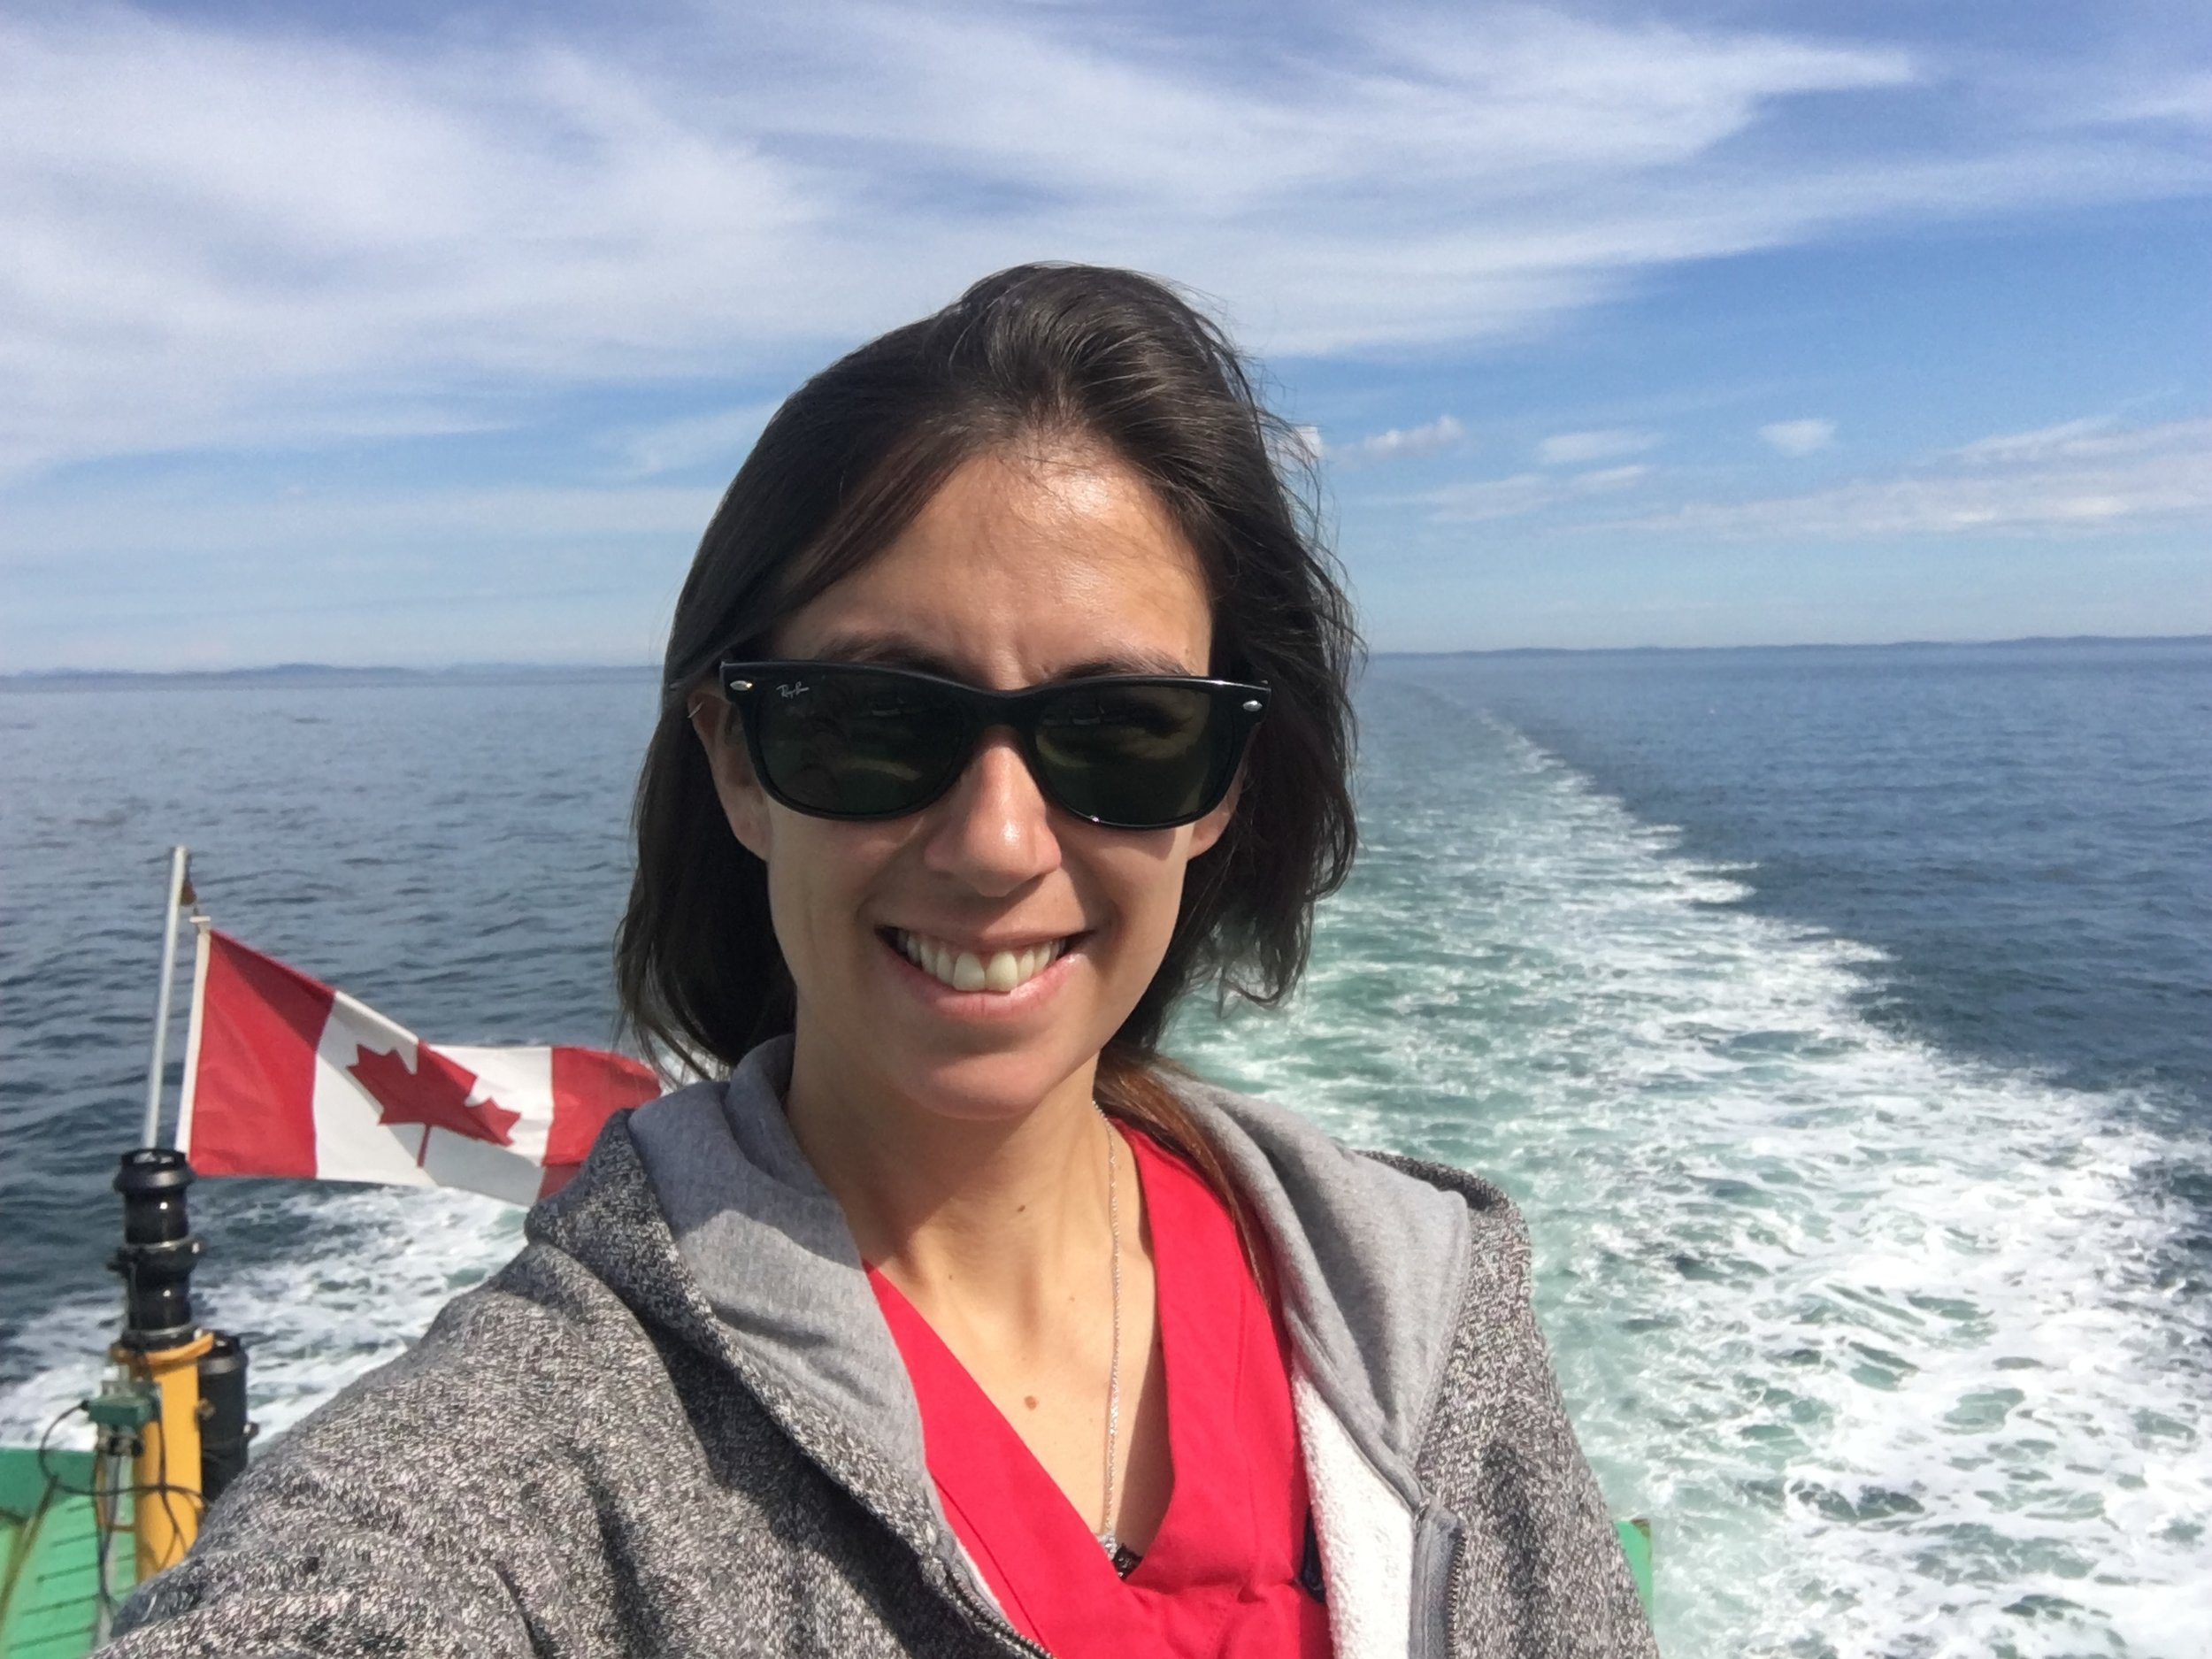 Megan was, in fact, with me on this trip but didn't last too long outside, as the open water does make her a bit queasy - but she loves Grand Manan so much that she quite cheerfully endures it!